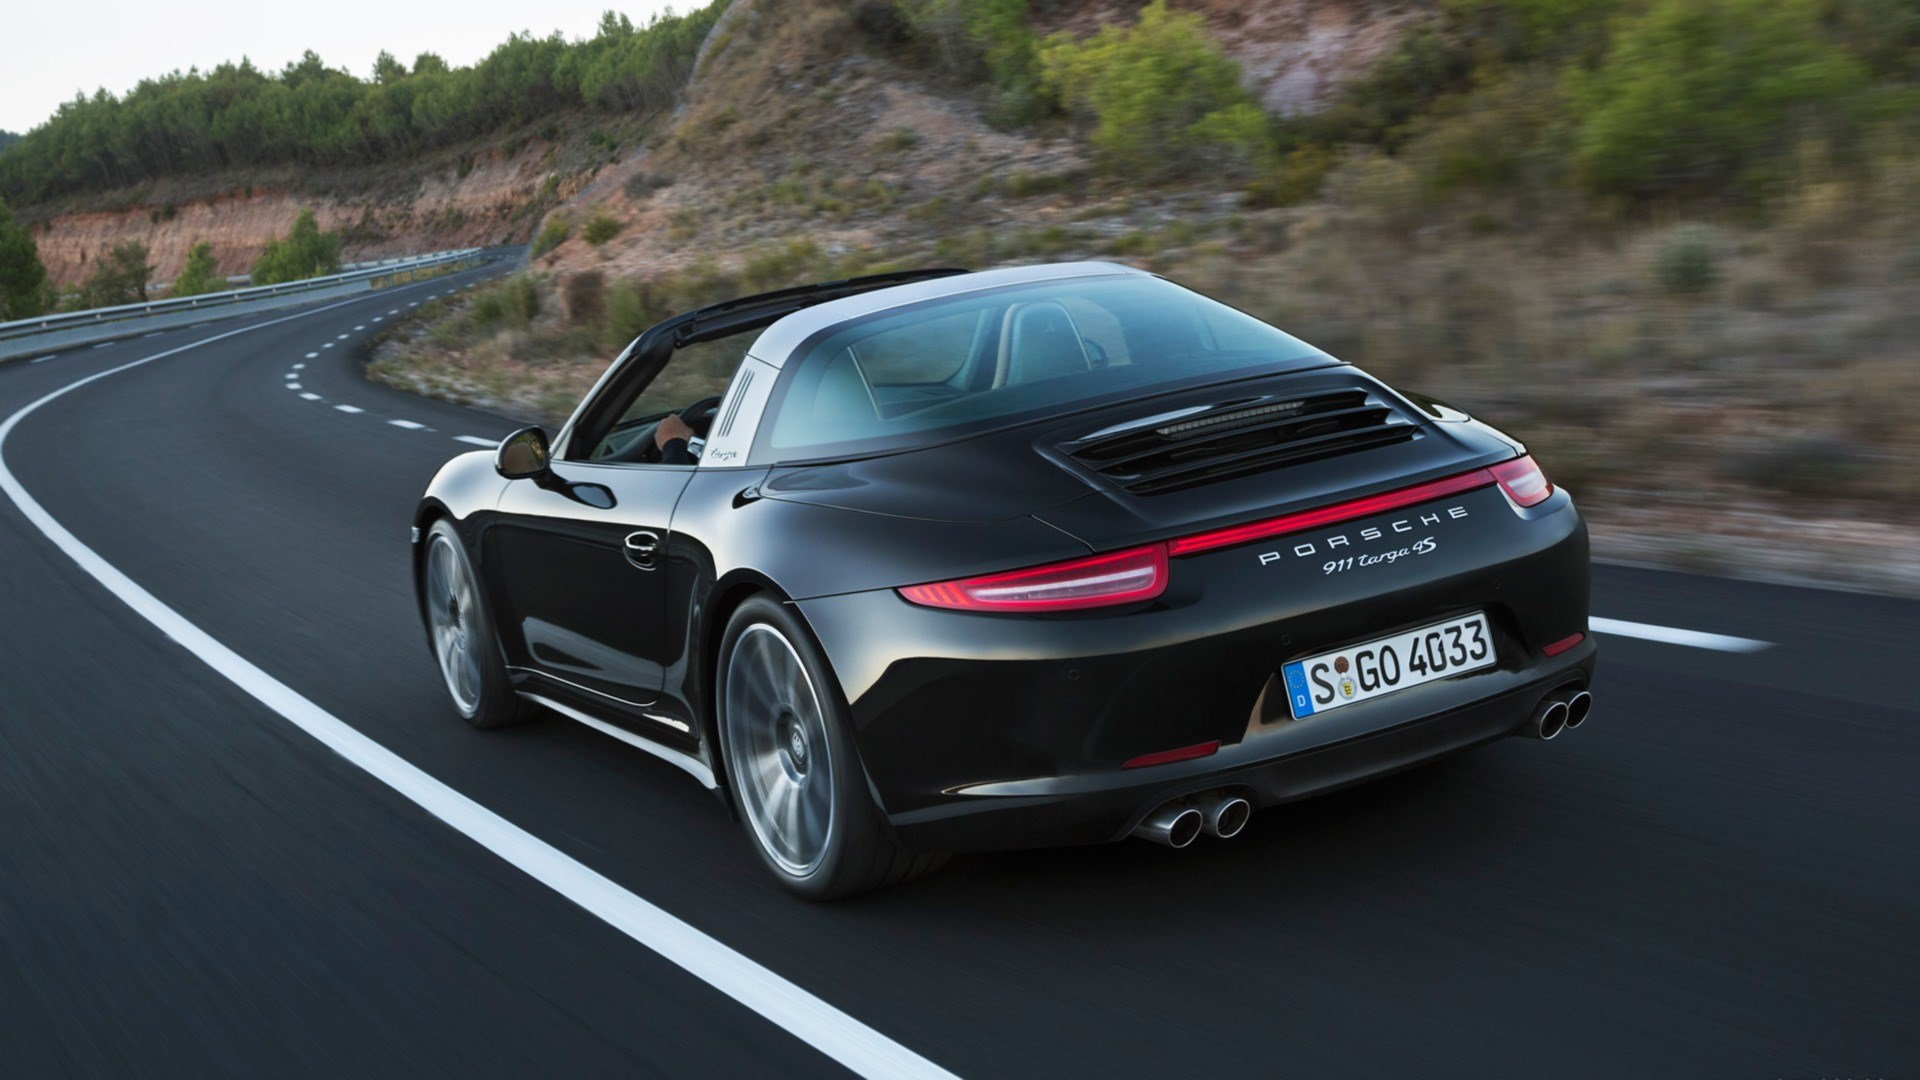 1920x1080-high-resolution-widescreen-porsche-targa-wallpaper-wpc900896